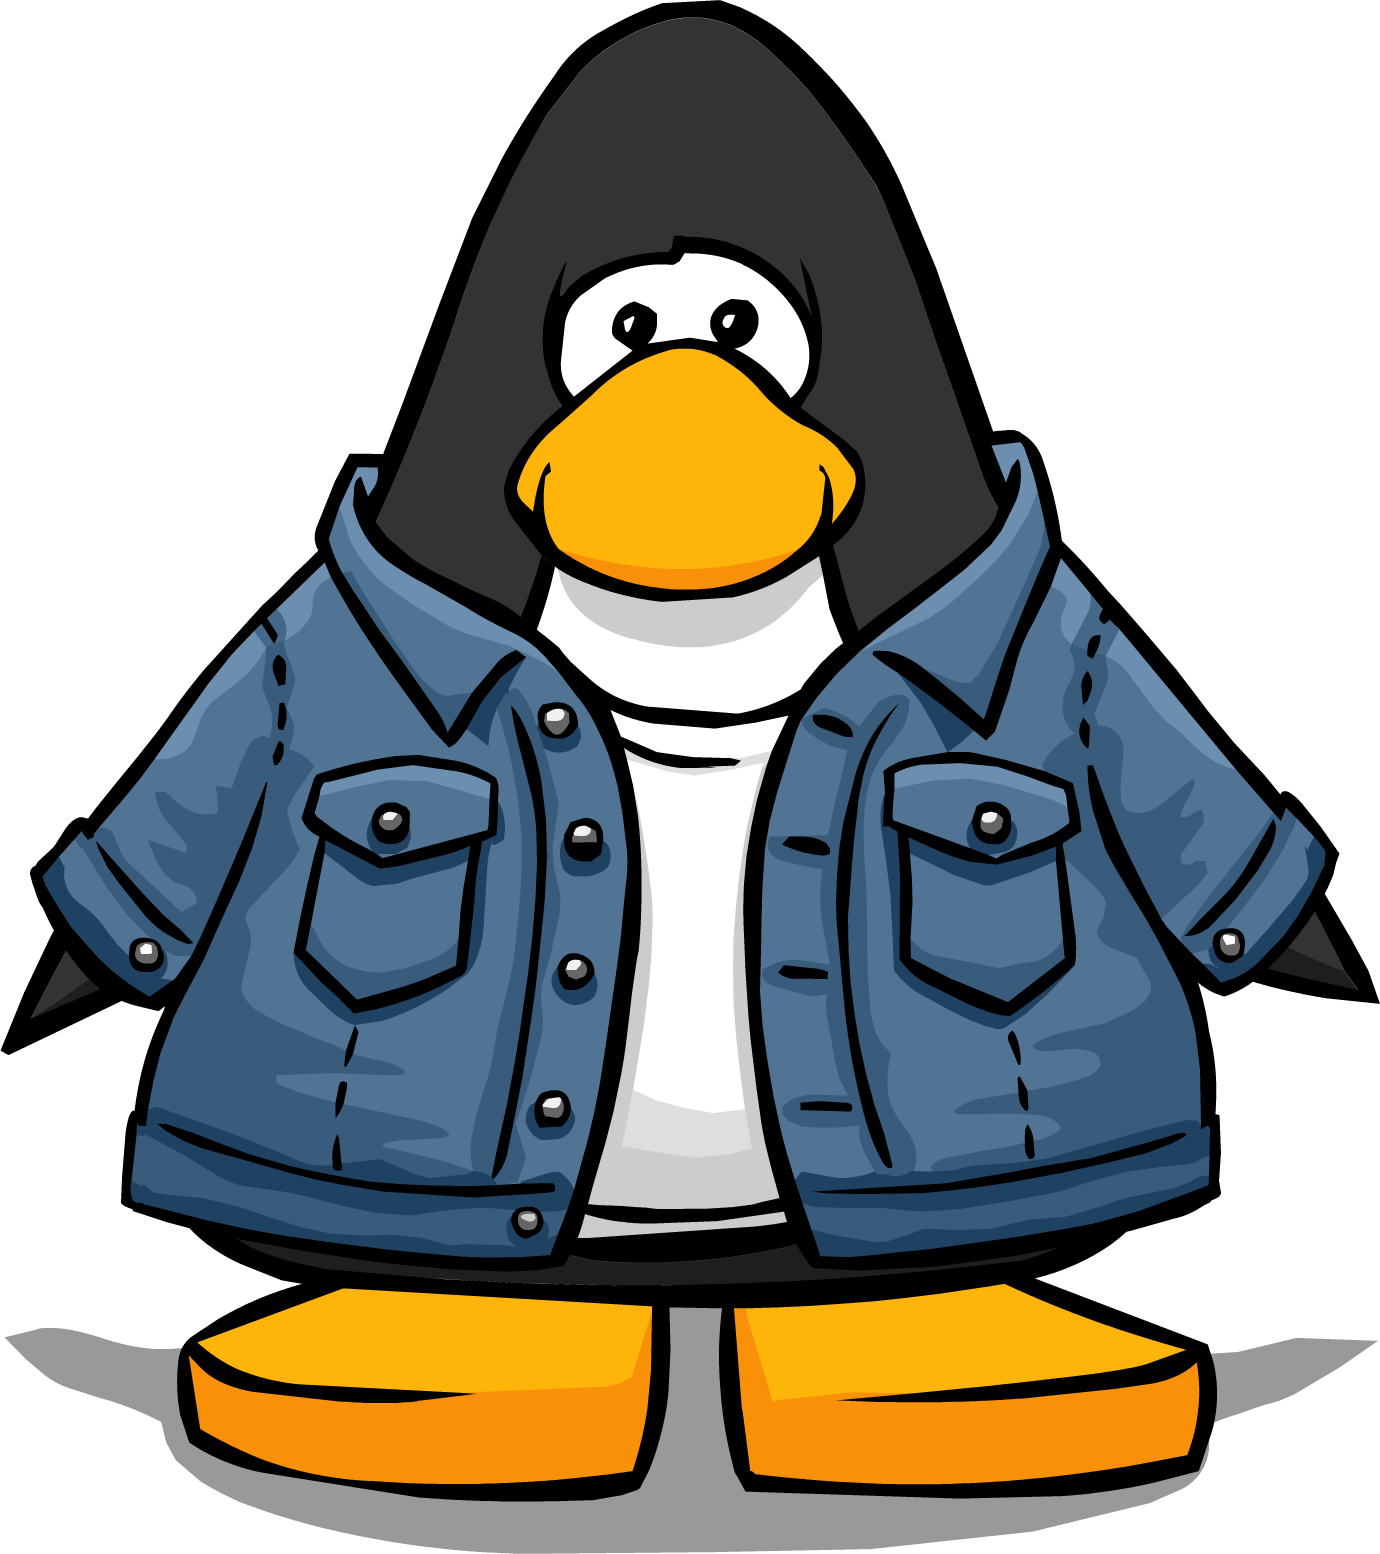 Jacket clipart jeans jacket. Image jean from a